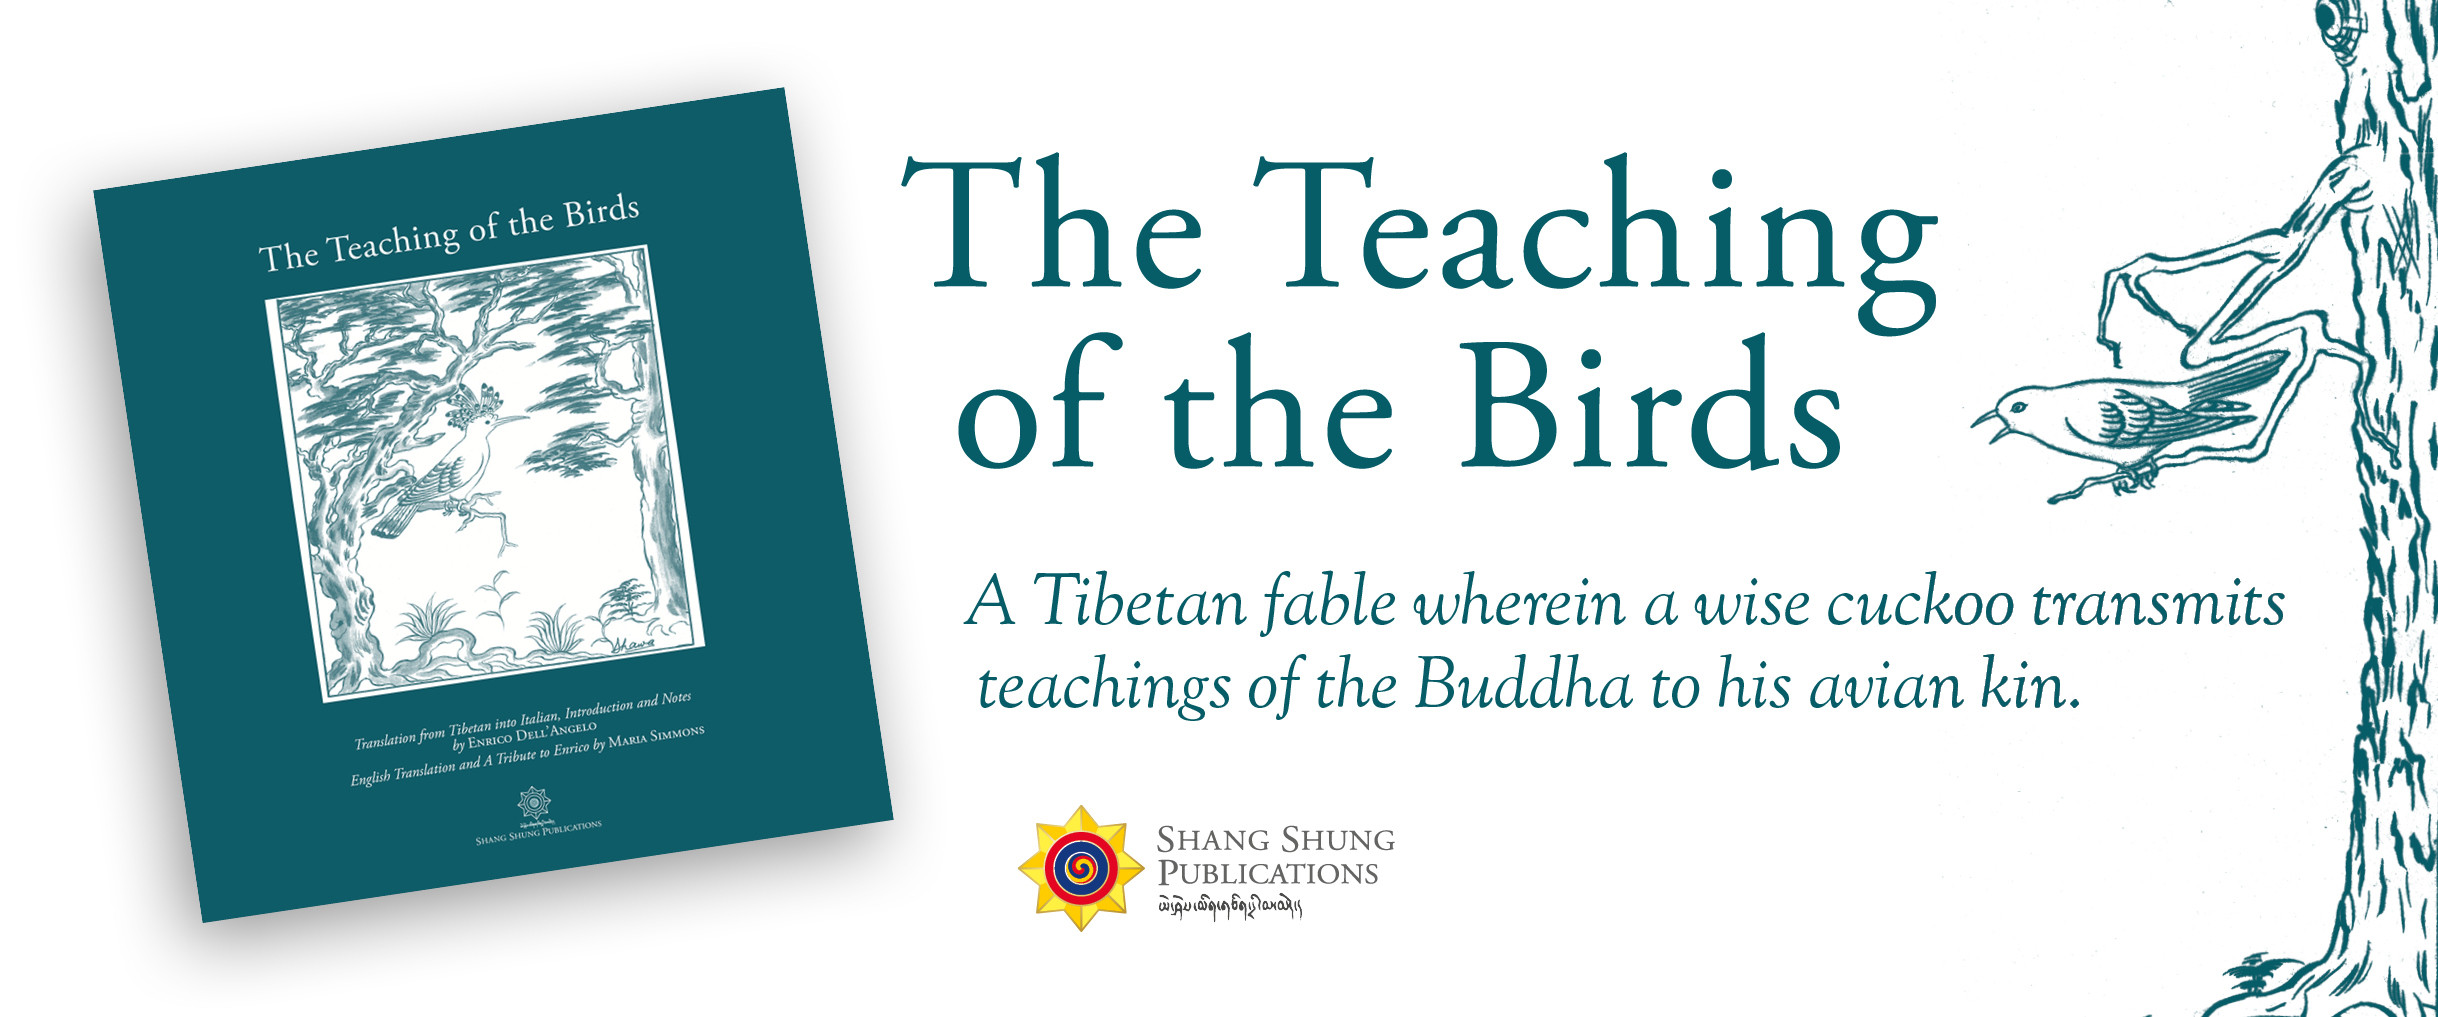 The Teaching of the Birds